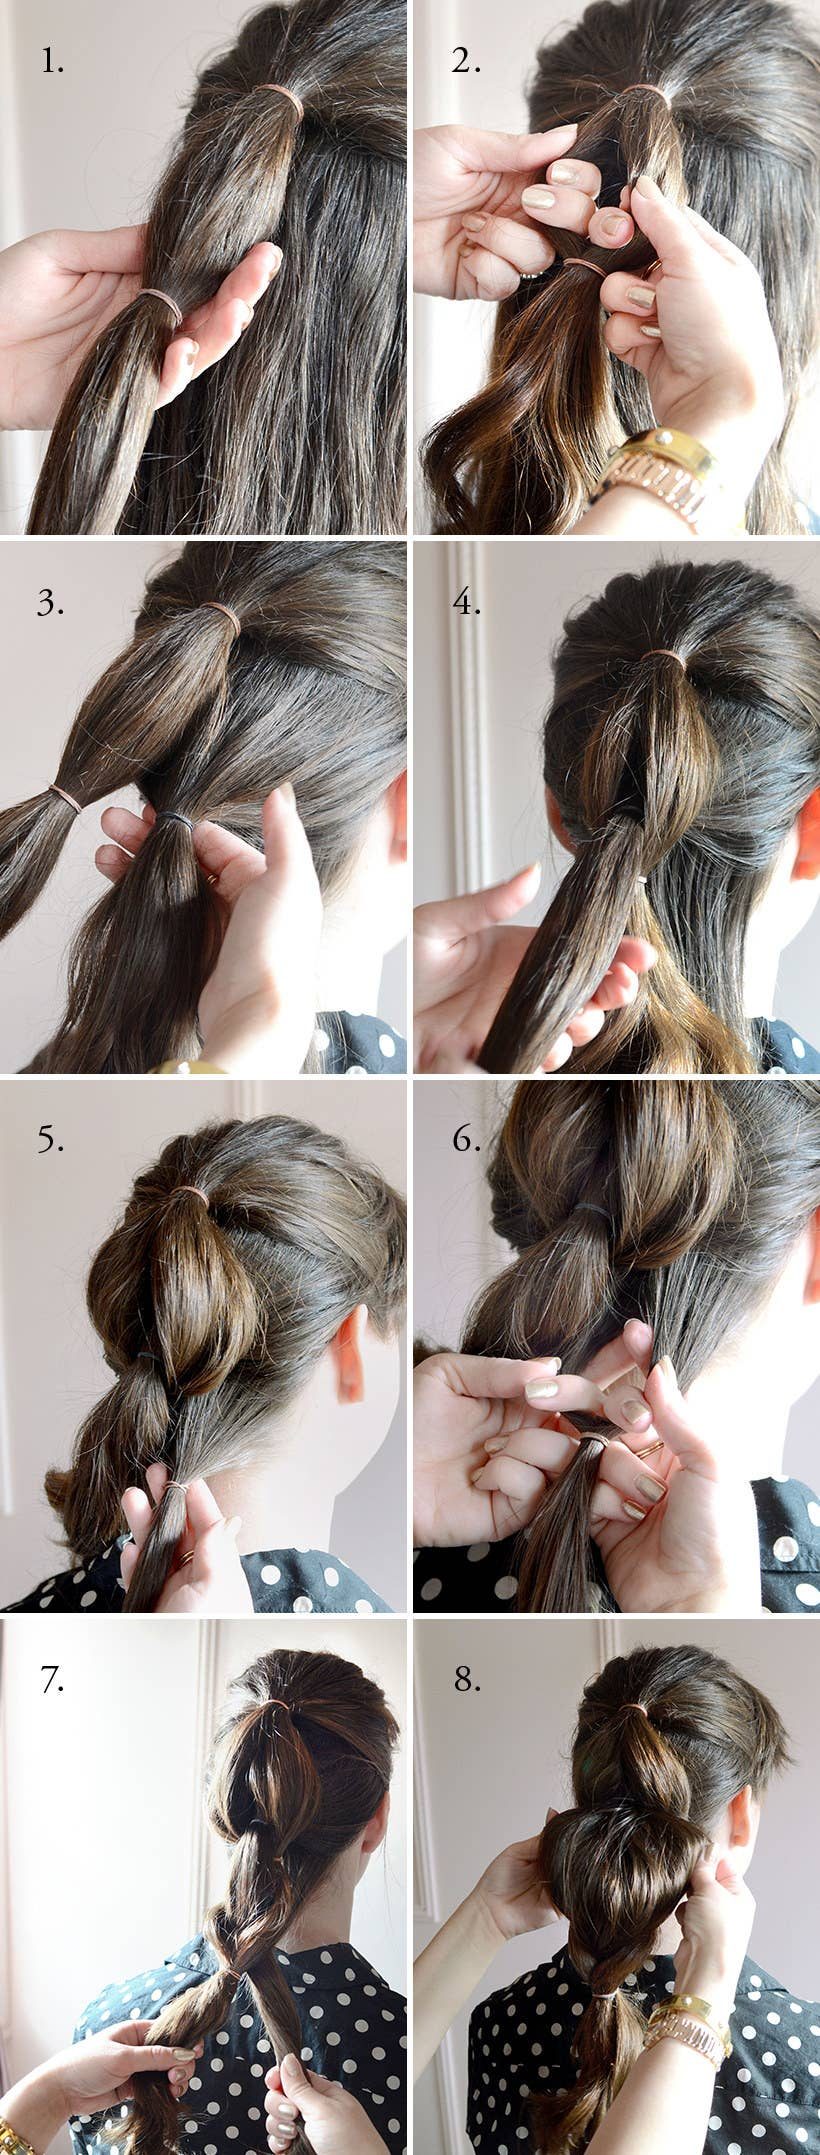 11 Surprisingly Simple Hair Tutorials With Stunning Results